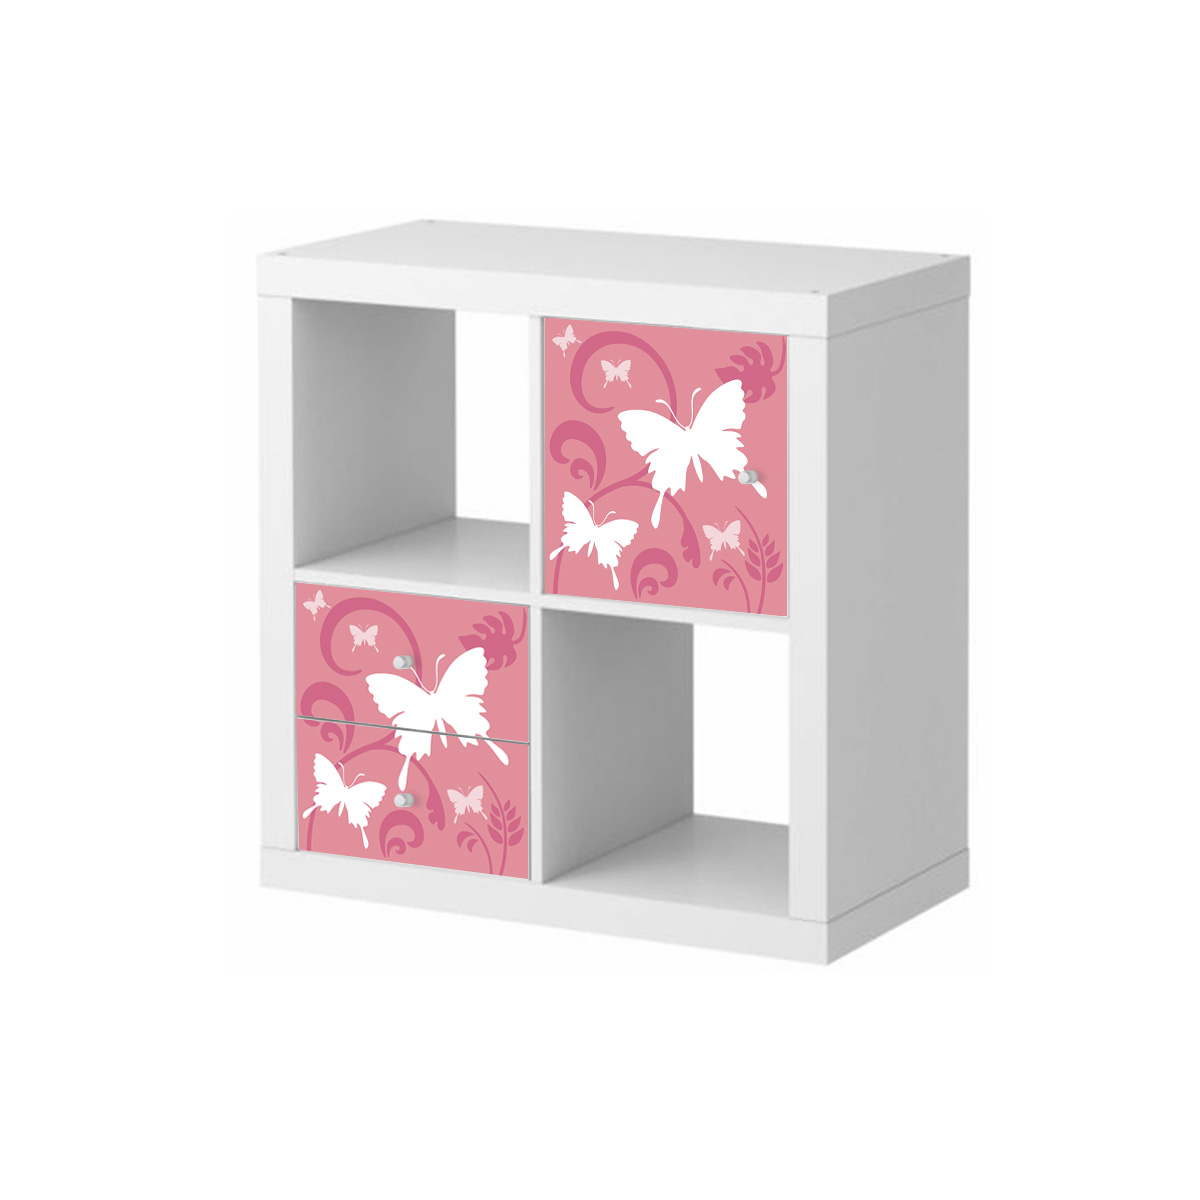 stickers meubles ikea stickers meubles ikea papillon prairie 1 ambiance. Black Bedroom Furniture Sets. Home Design Ideas